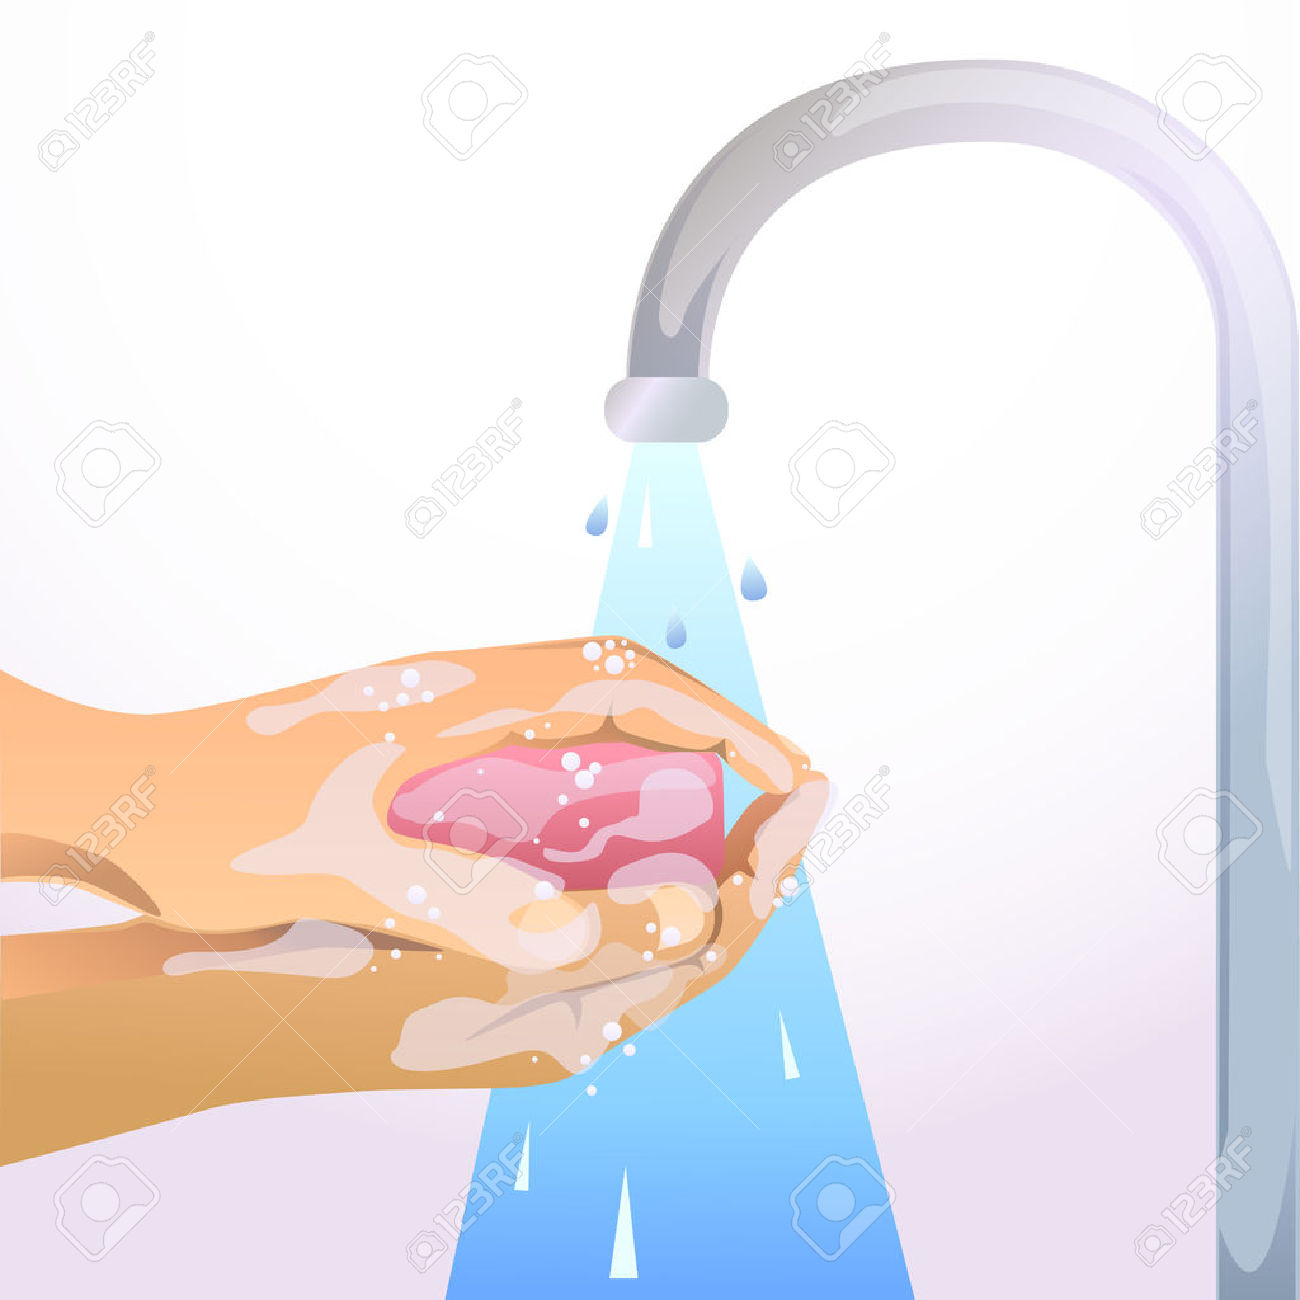 Hand washing soap and water clipart banner library stock Hand Washing With Soap And Water Royalty Free Cliparts, Vectors ... banner library stock